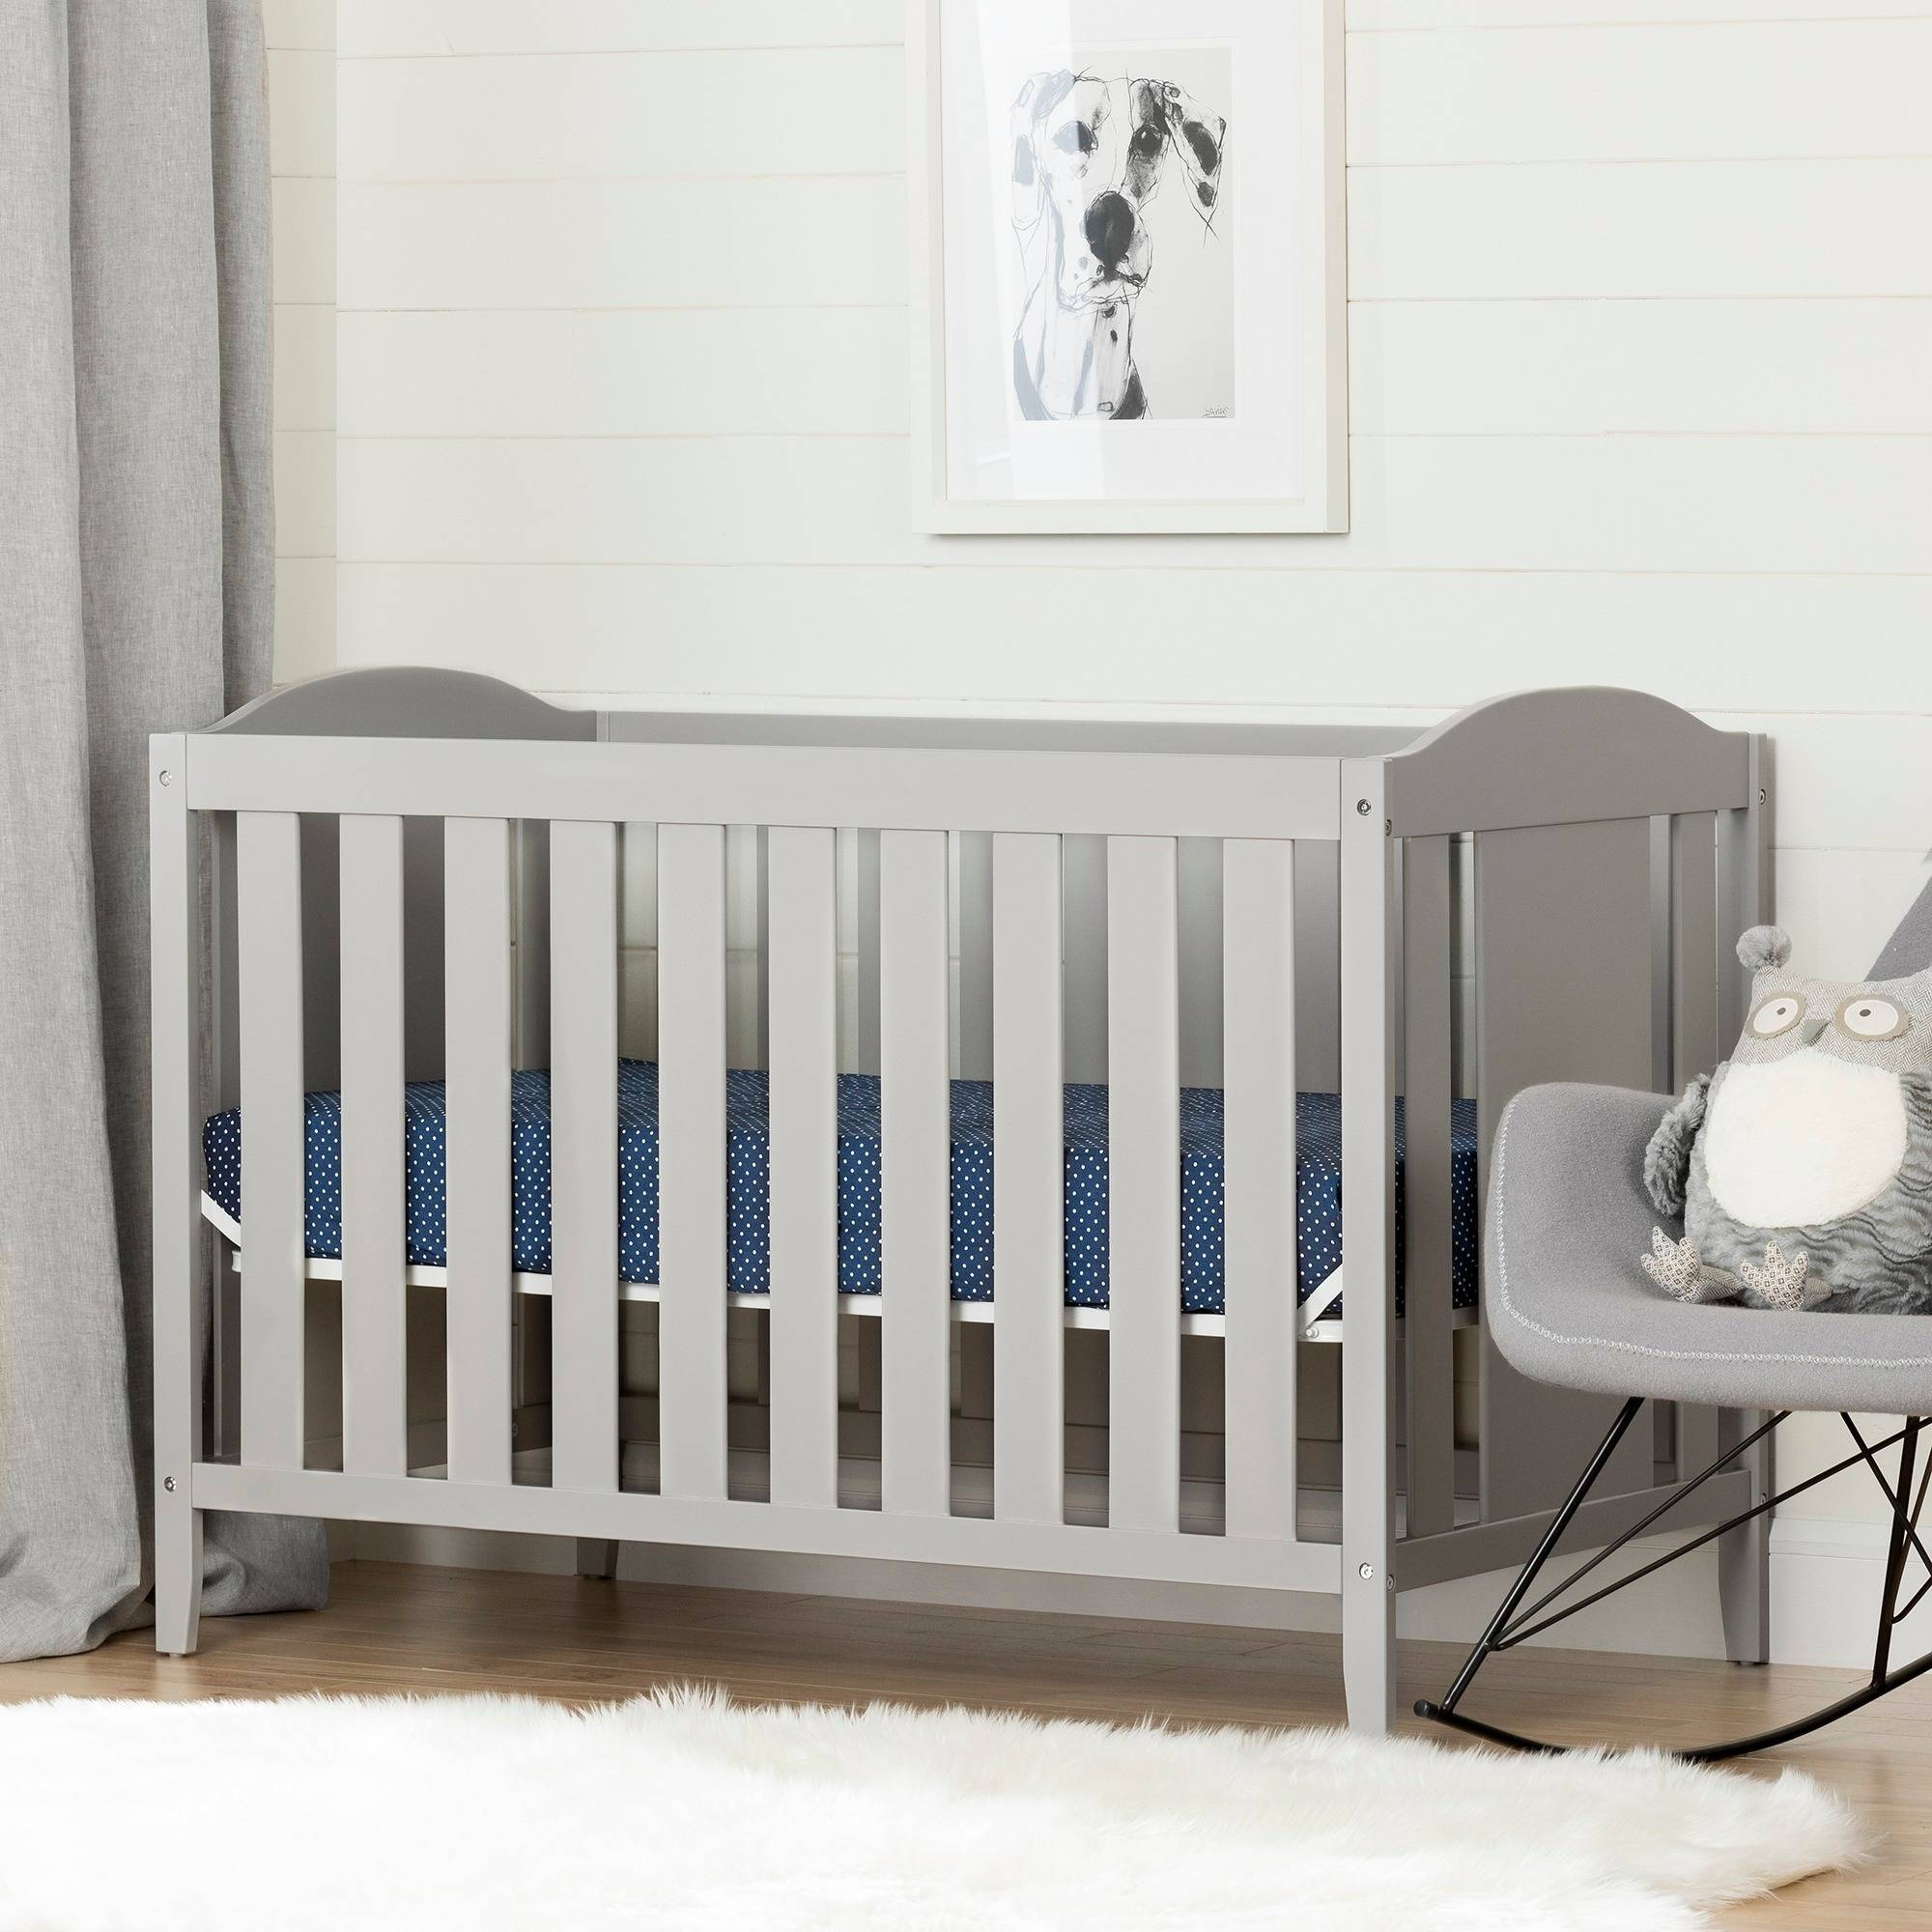 South Shore Angel 2-in-1 Convertible Crib, Multiple Finishes by South Shore Furniture